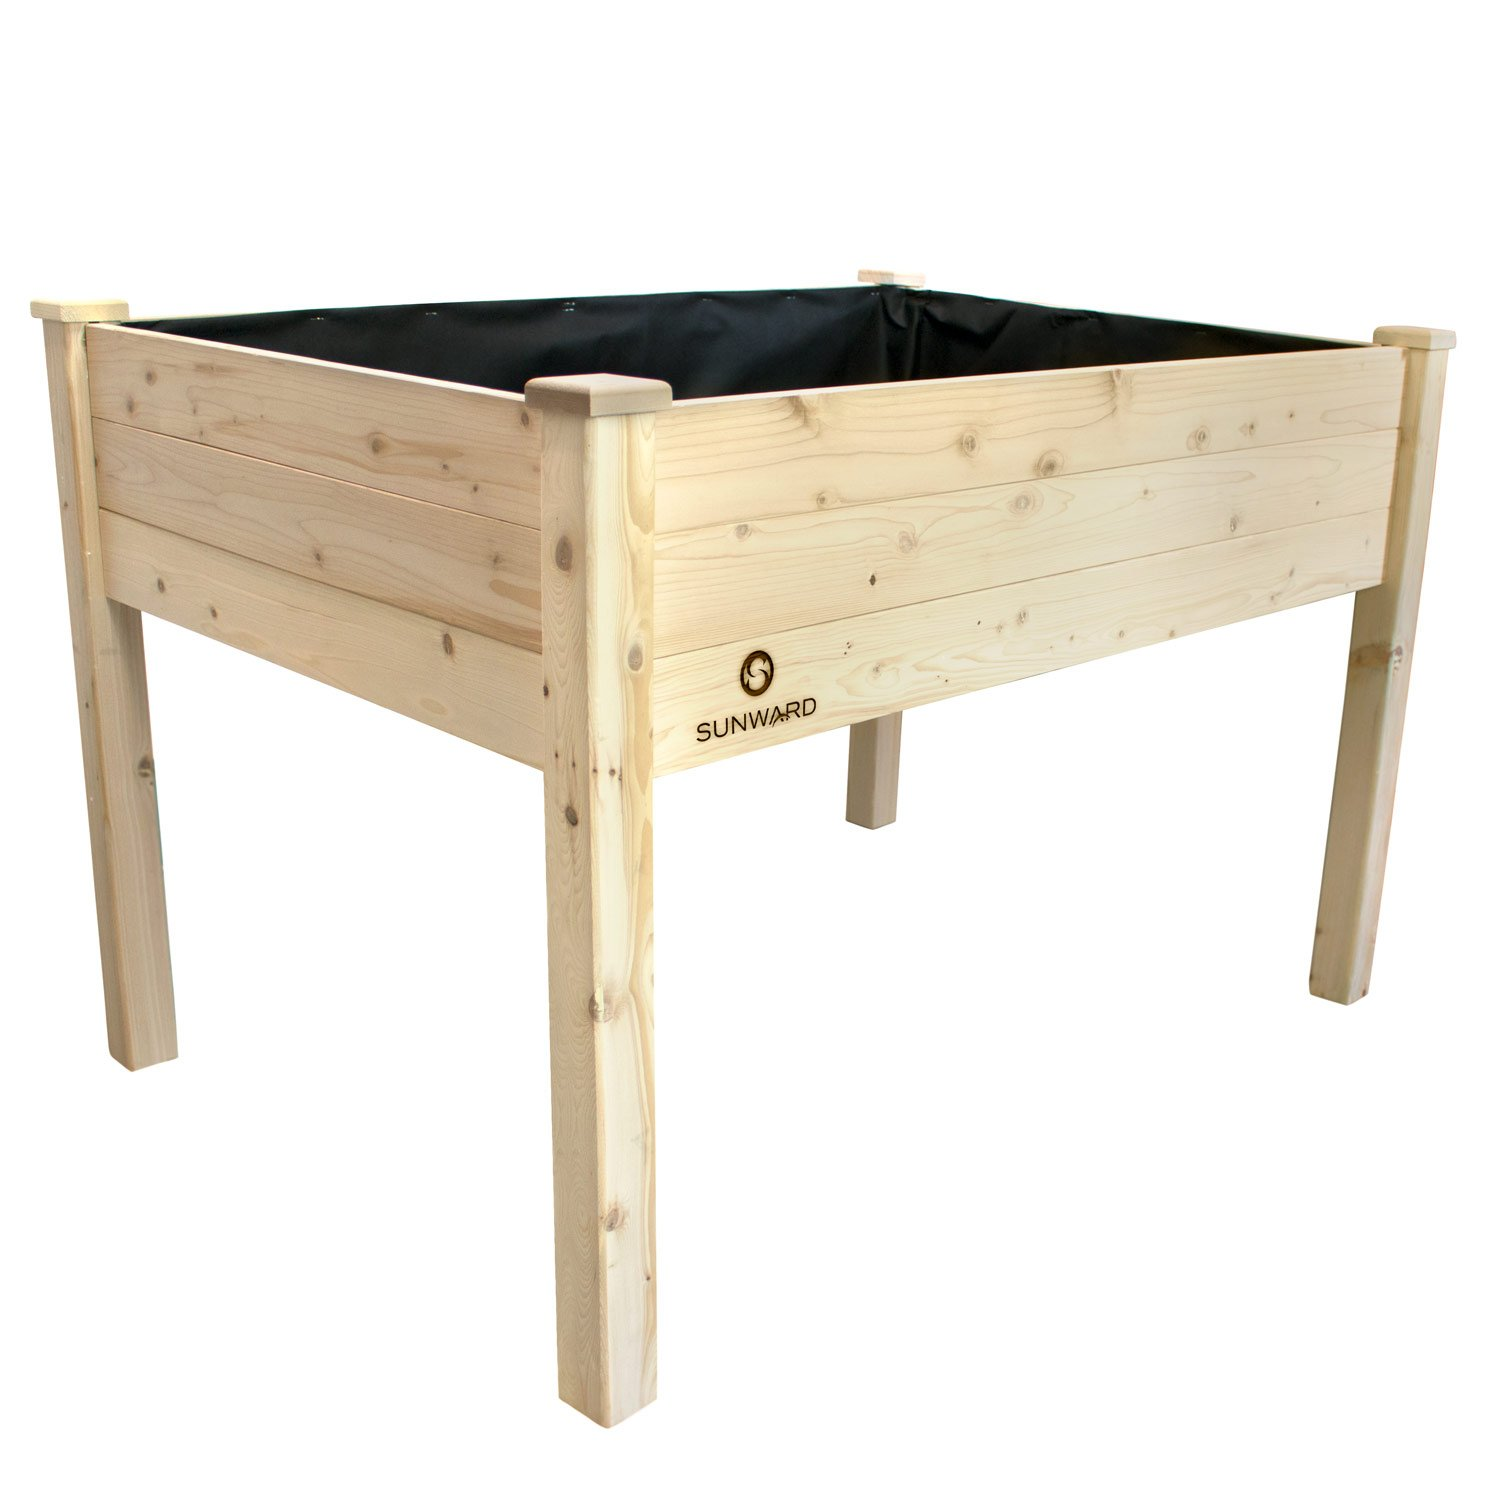 Sunward Patio Raised Garden Bed Elevated Planter Box (48 x 34 x 32) by Sunward Patio